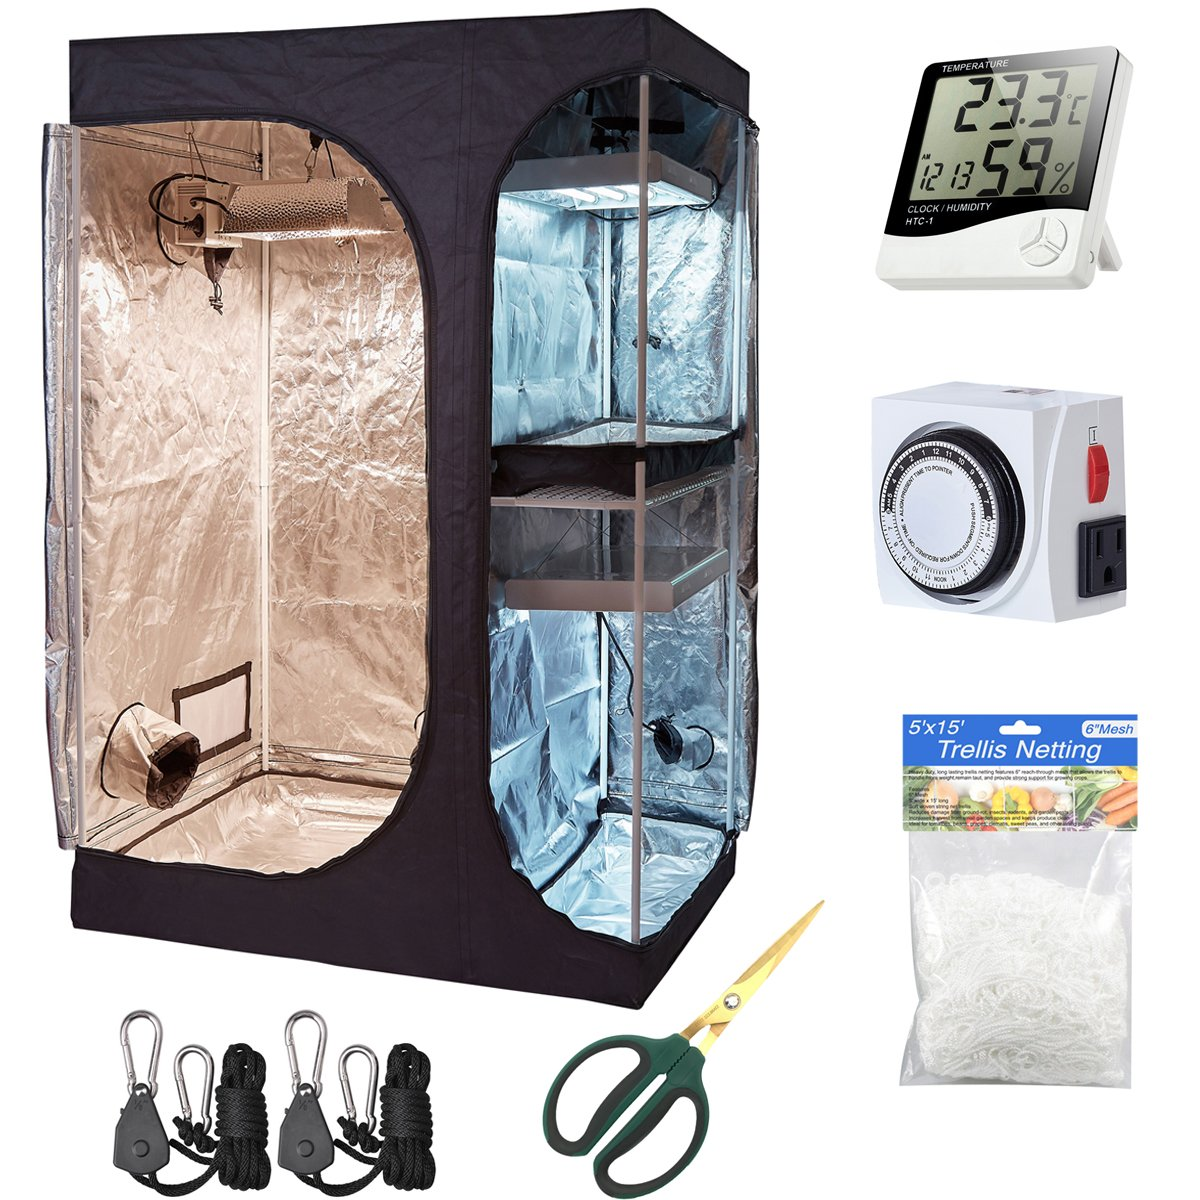 Hydro Plus Grow Tent Kit 48 x36 x72 2-in-1 Indoor Plants Growing Dark Room Non Toxic Hut Hydroponics Growing Setup Accessories 48 x36 x72 Kit